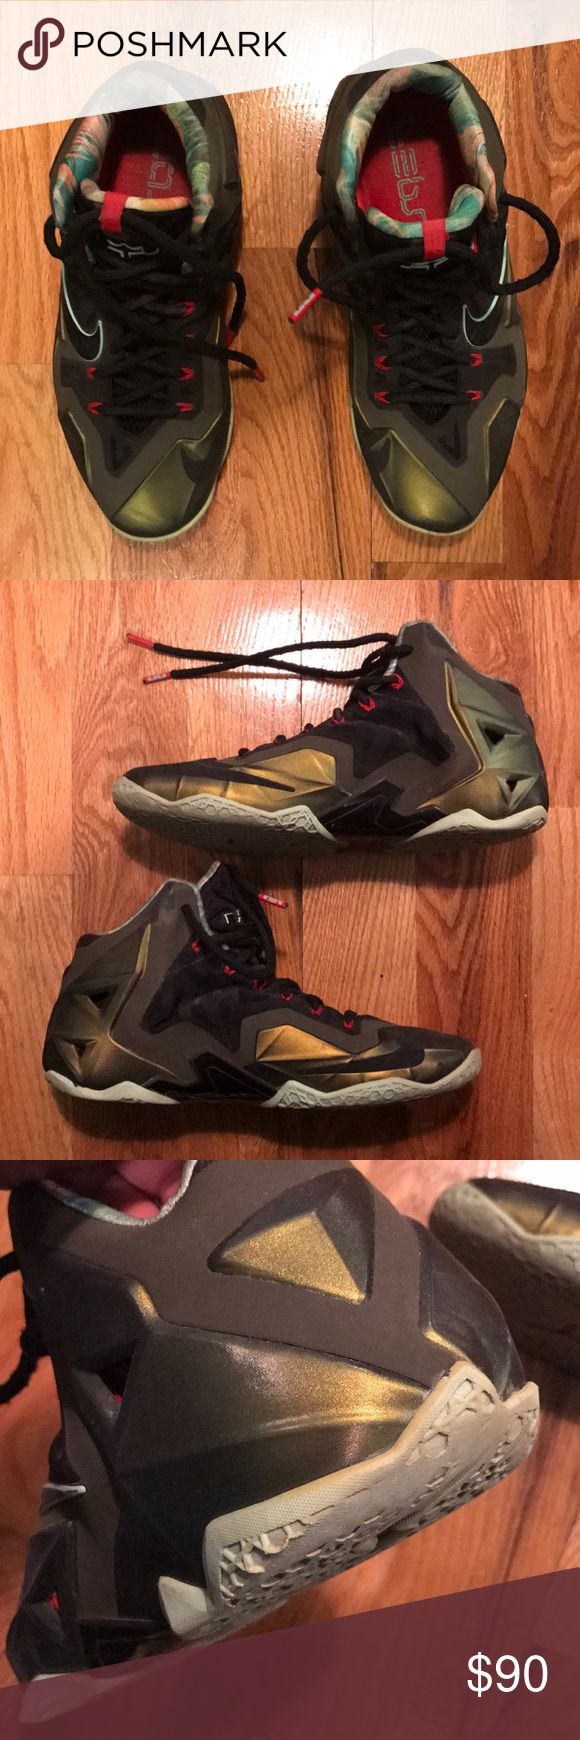 Lebron James basketball shoes Used. Very well kept. Unisex shoes. Size 8 in men. Fit a size 9 for women Nike Shoes Sneakers